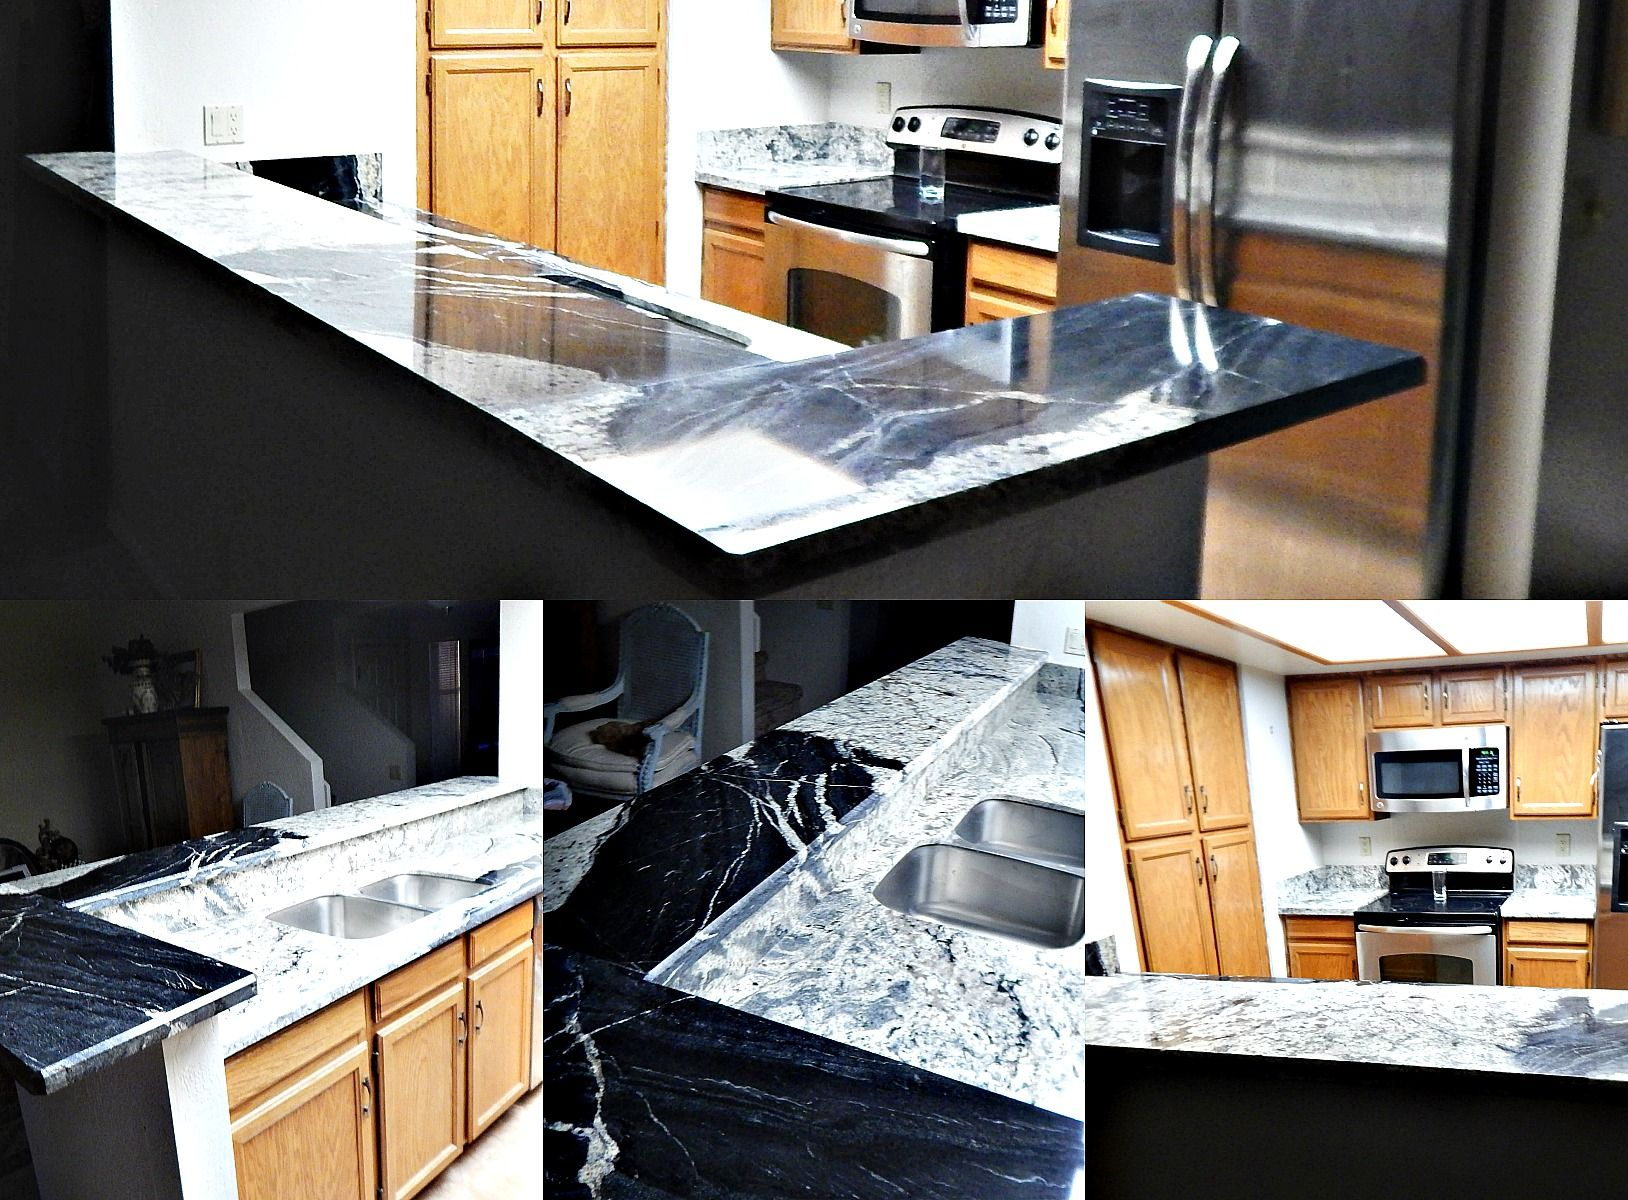 Copacabana Granite Countertop Remodel With Bevel Edge And 60/40 Stainless  Steel Sink. Truly